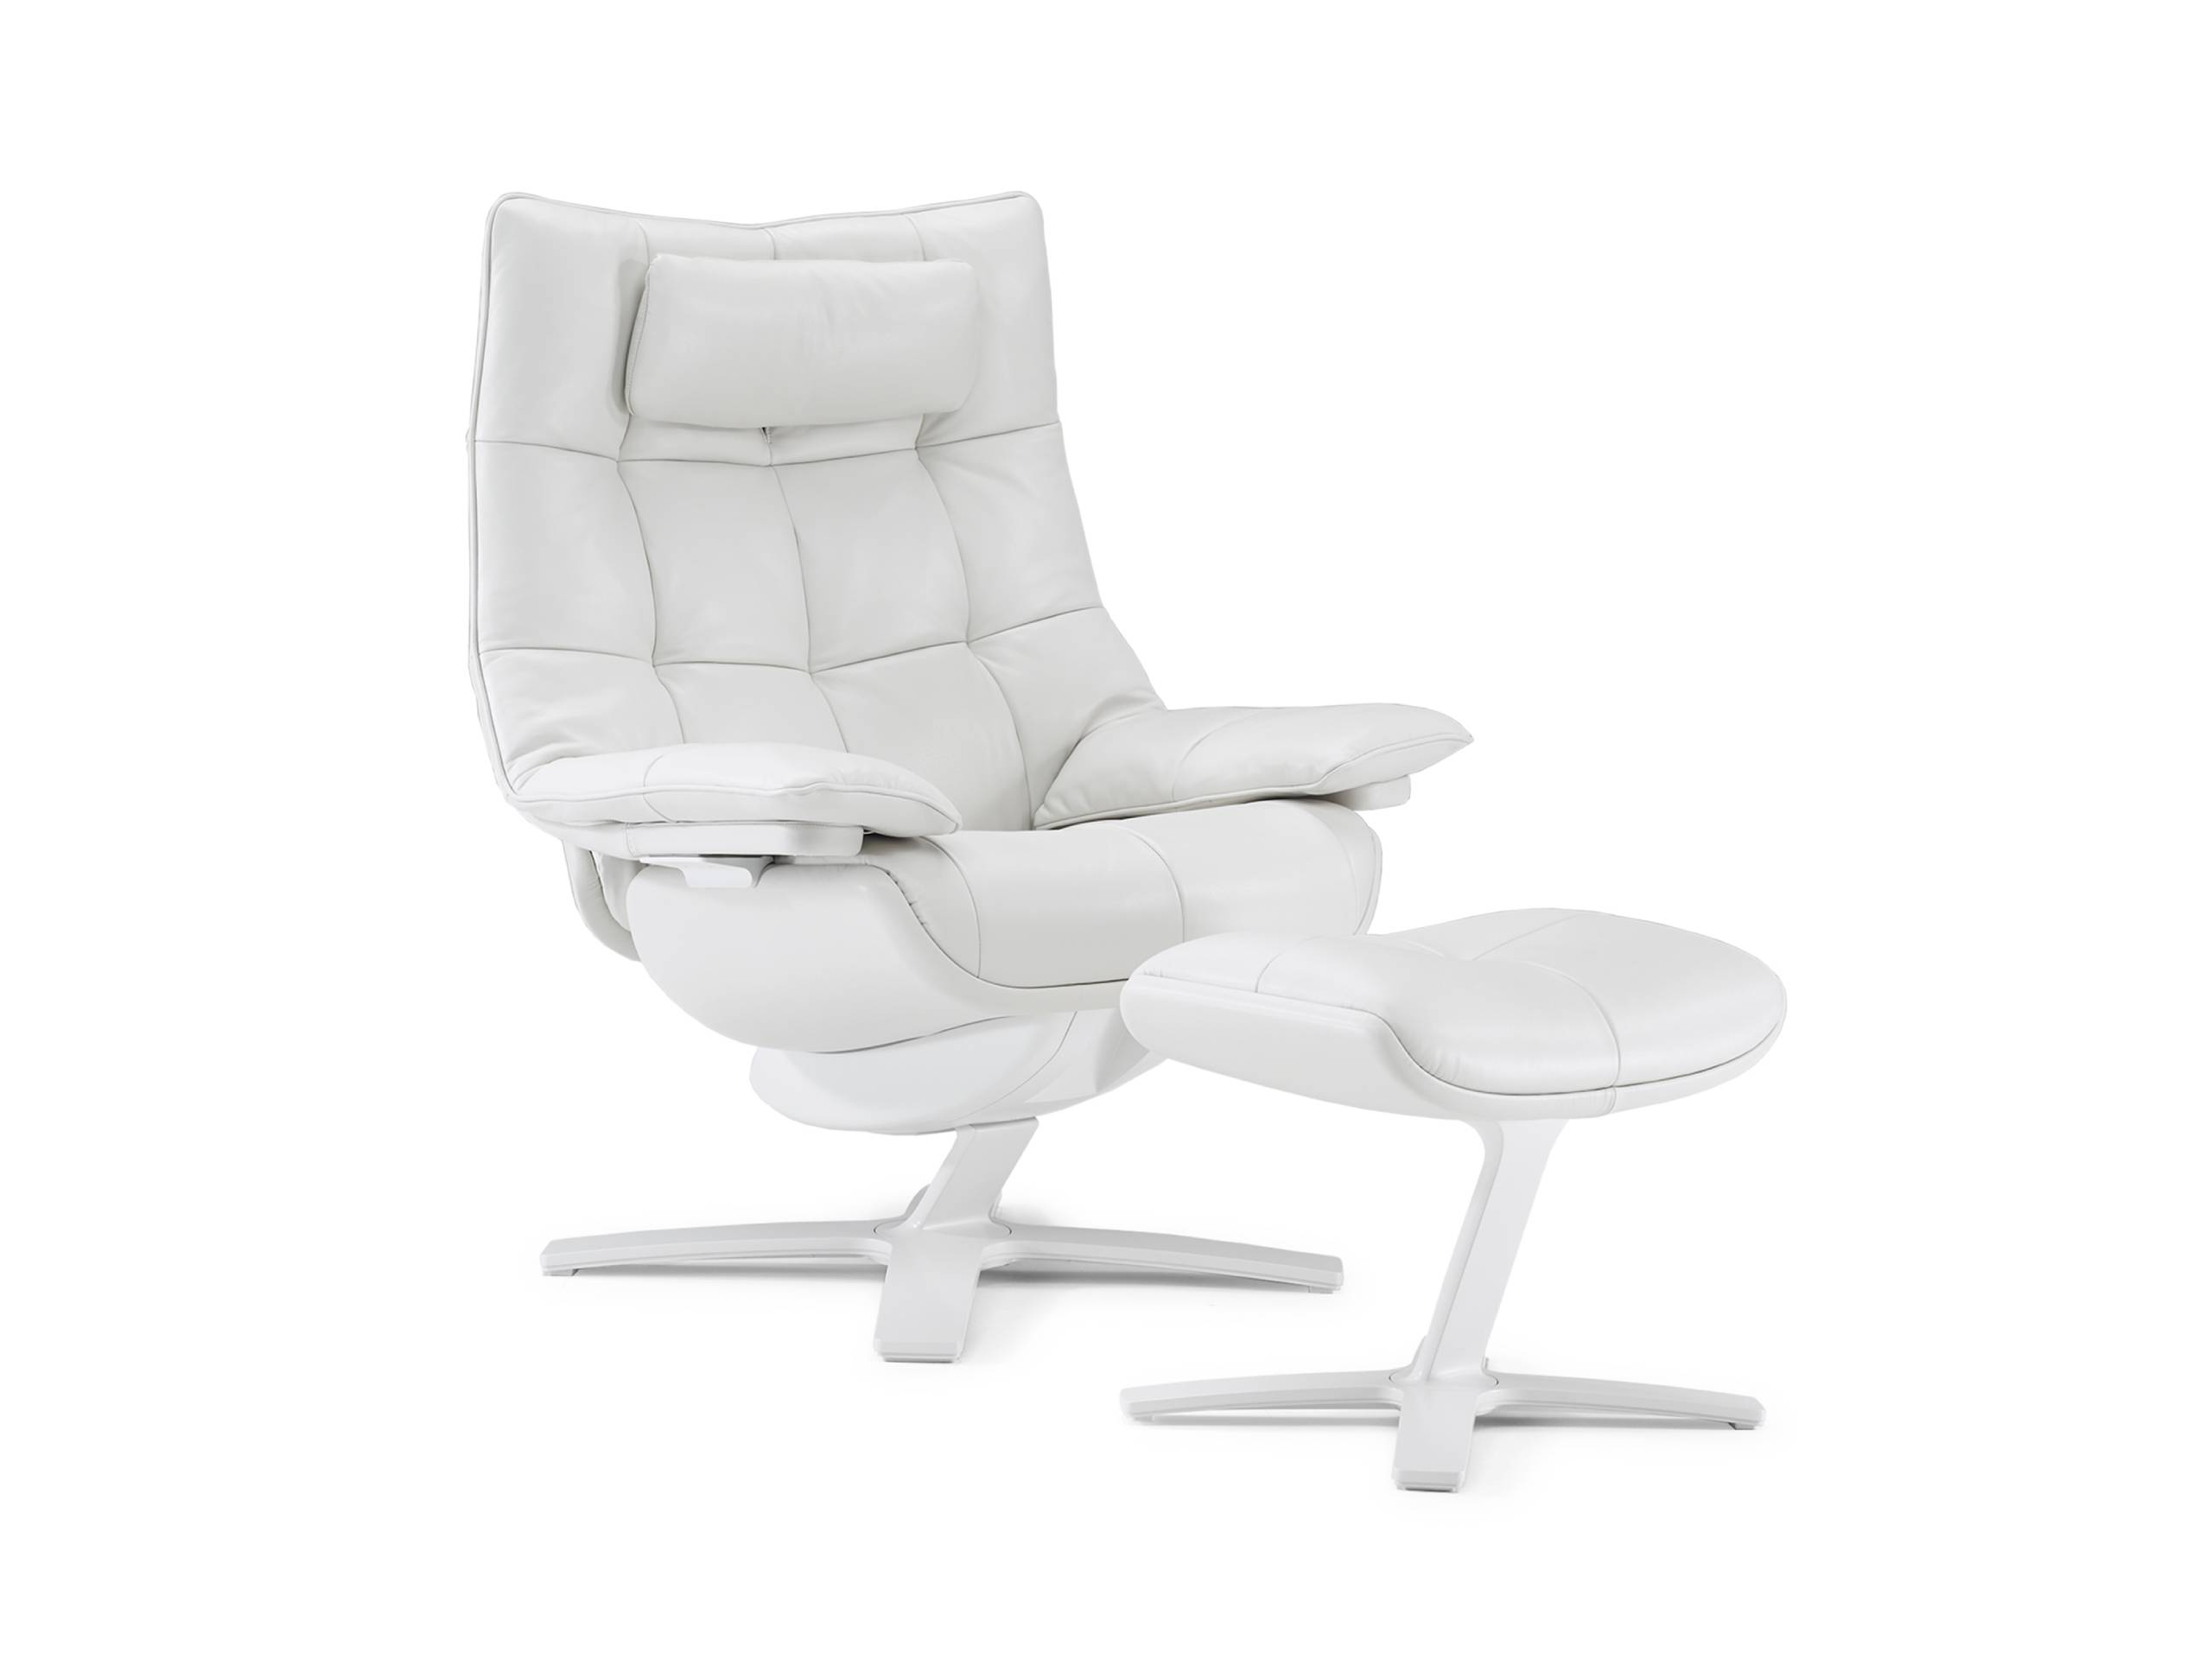 Natuzzi Re-Vive 600K Quilted King with Footrest